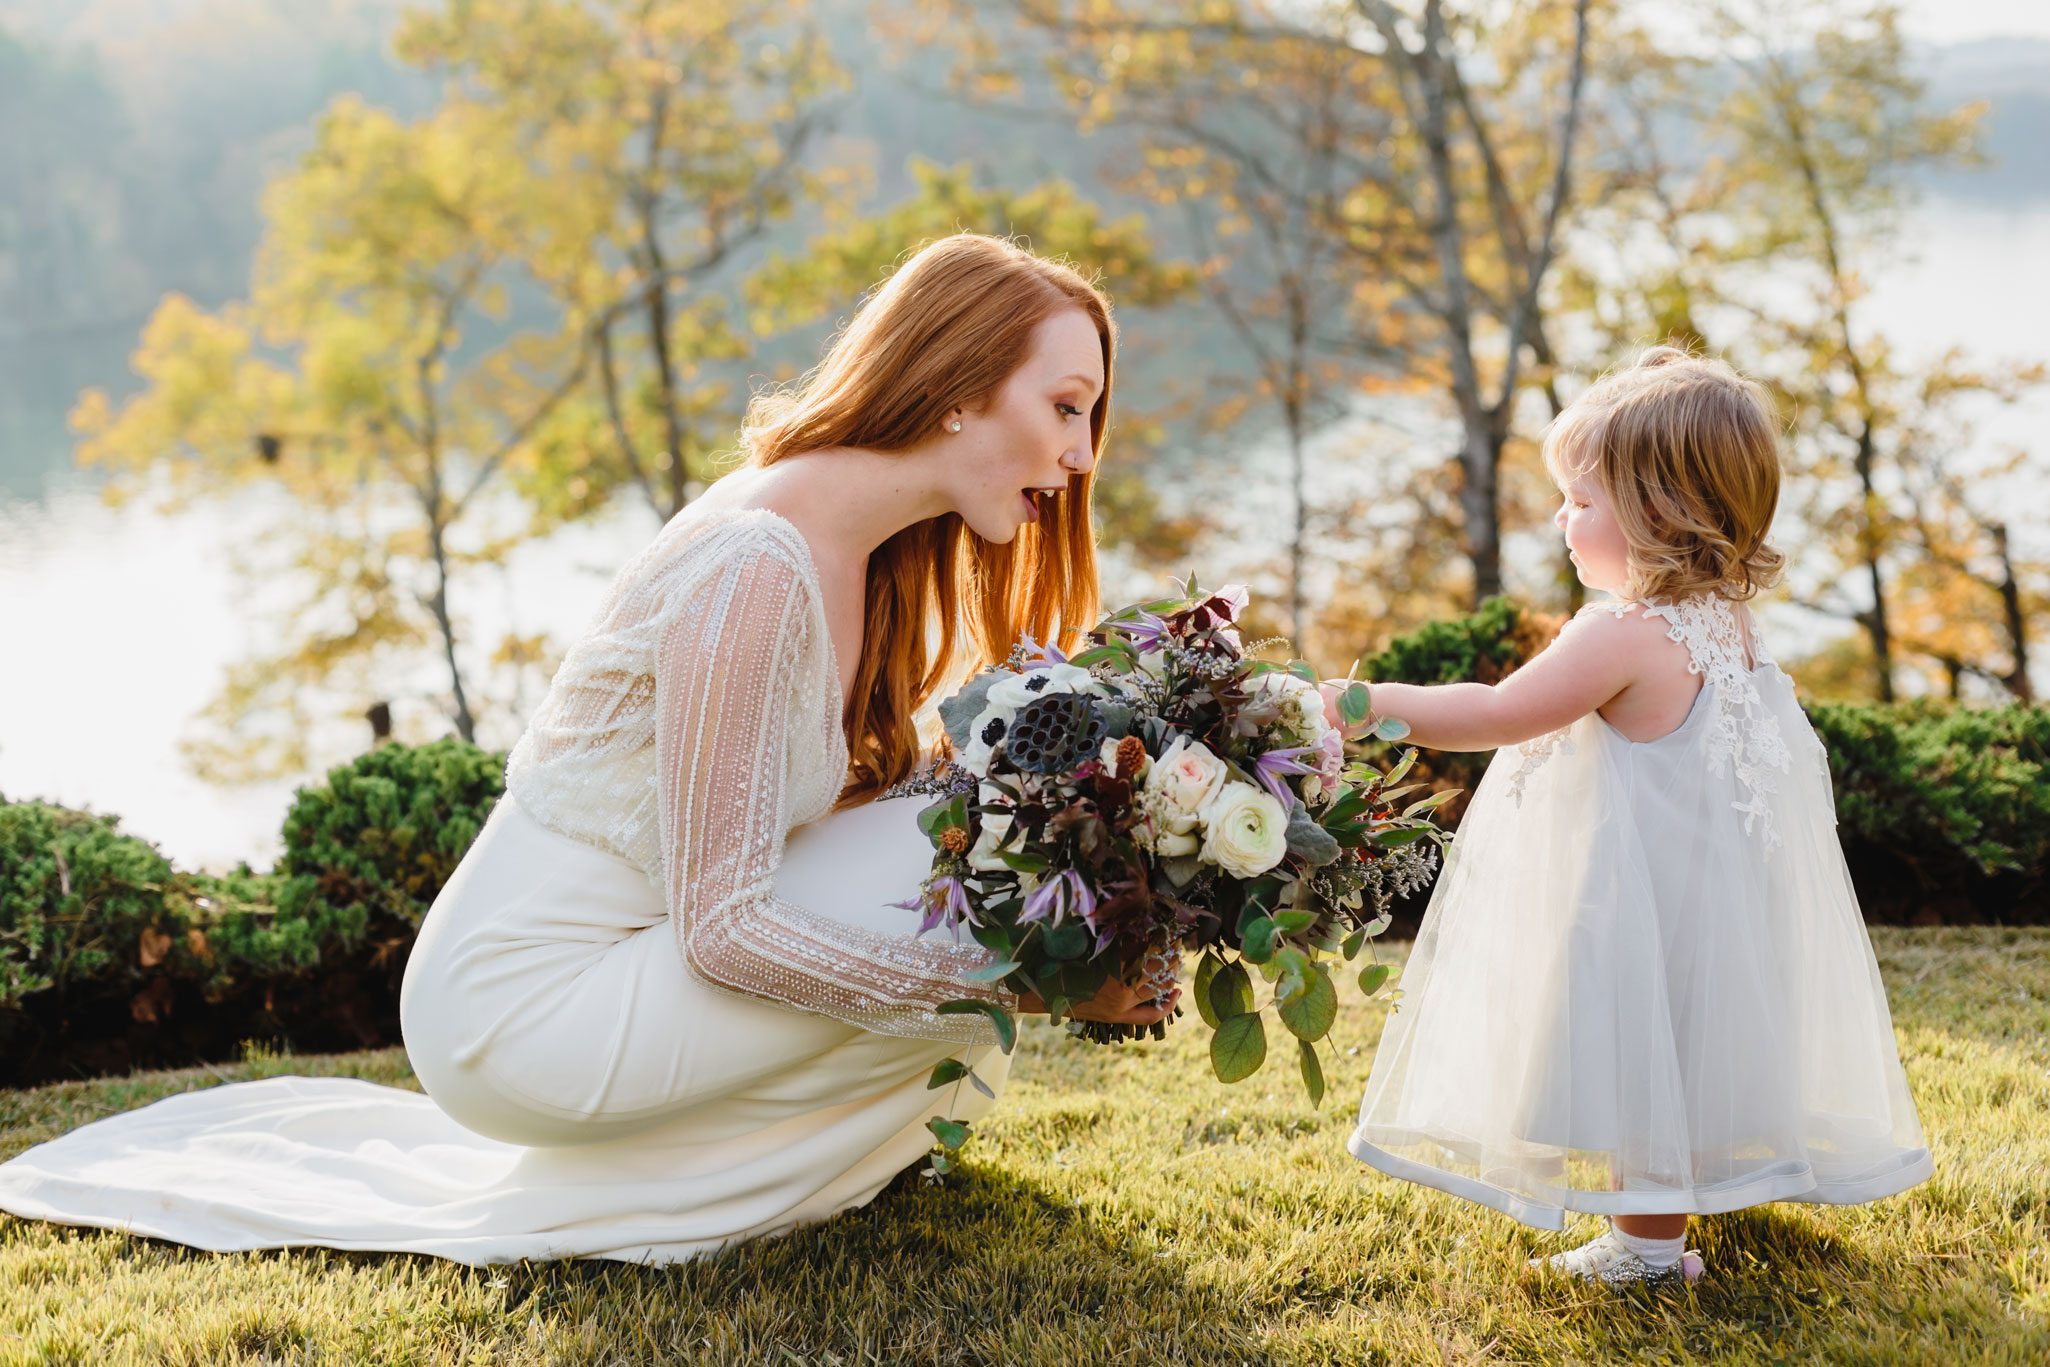 Bride & Flowergirl | Autumn Tennessee Wedding in Knoxville